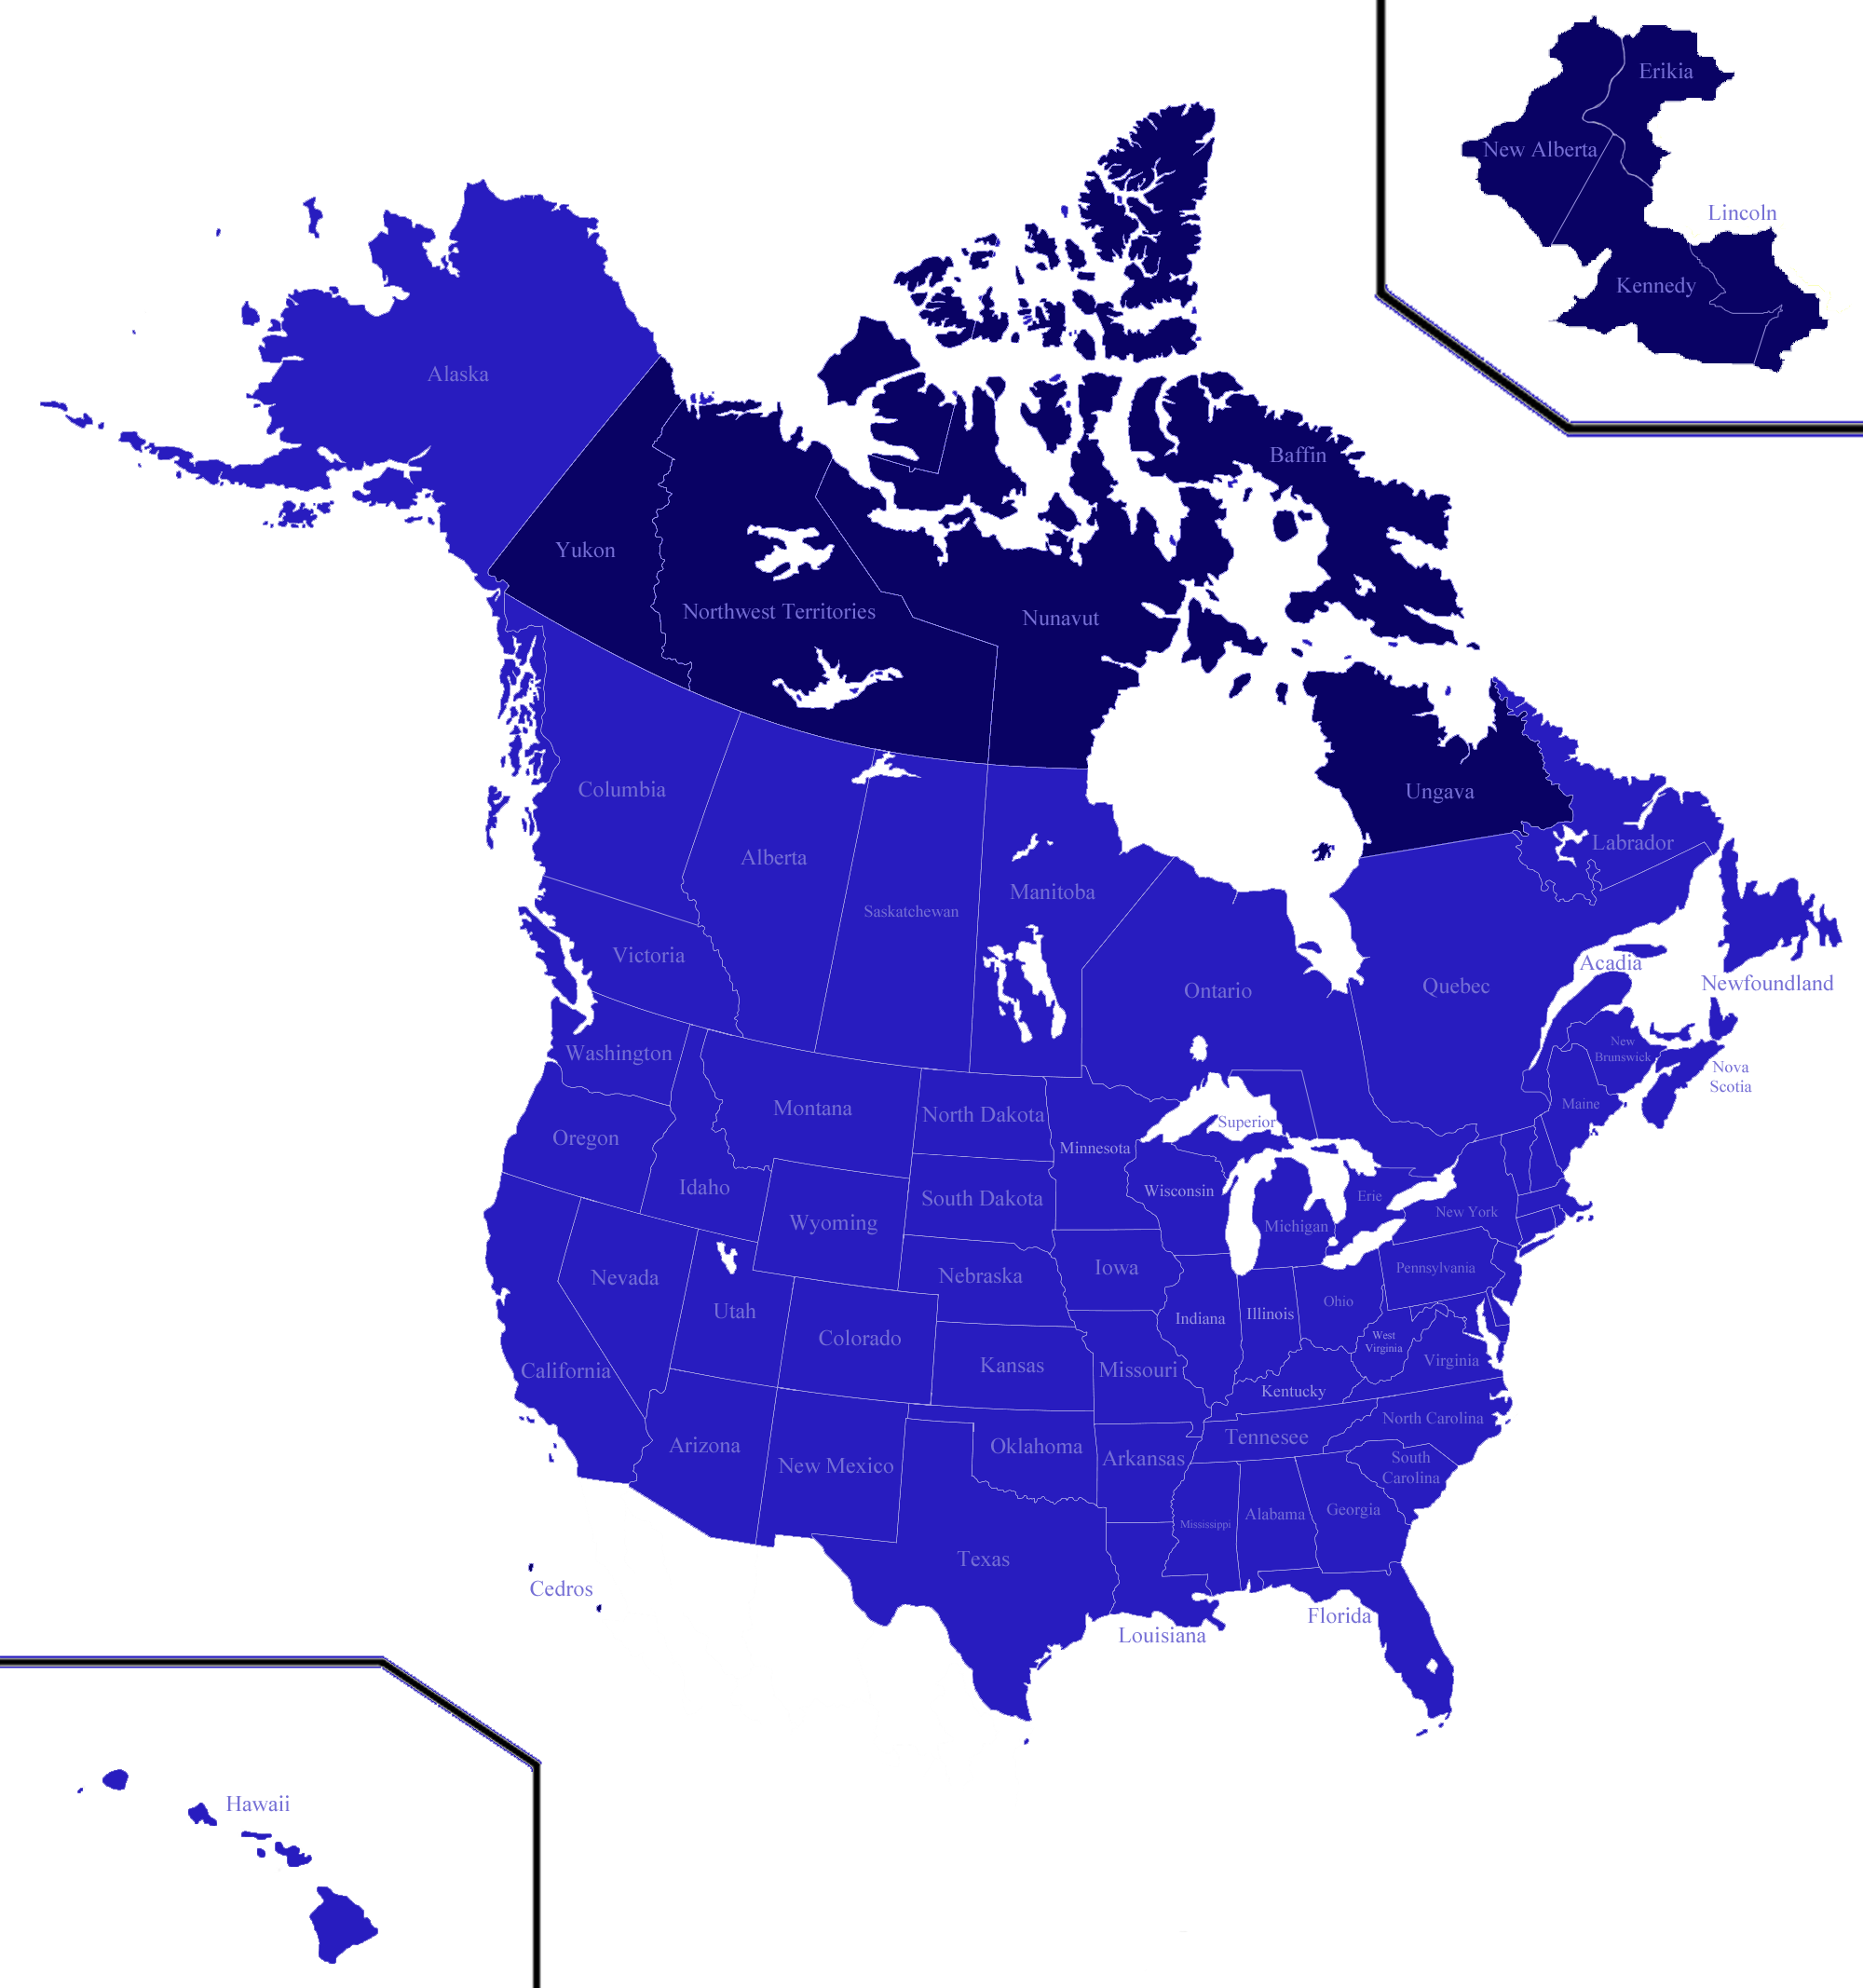 Image North American Unionpng Map Game Wiki FANDOM powered